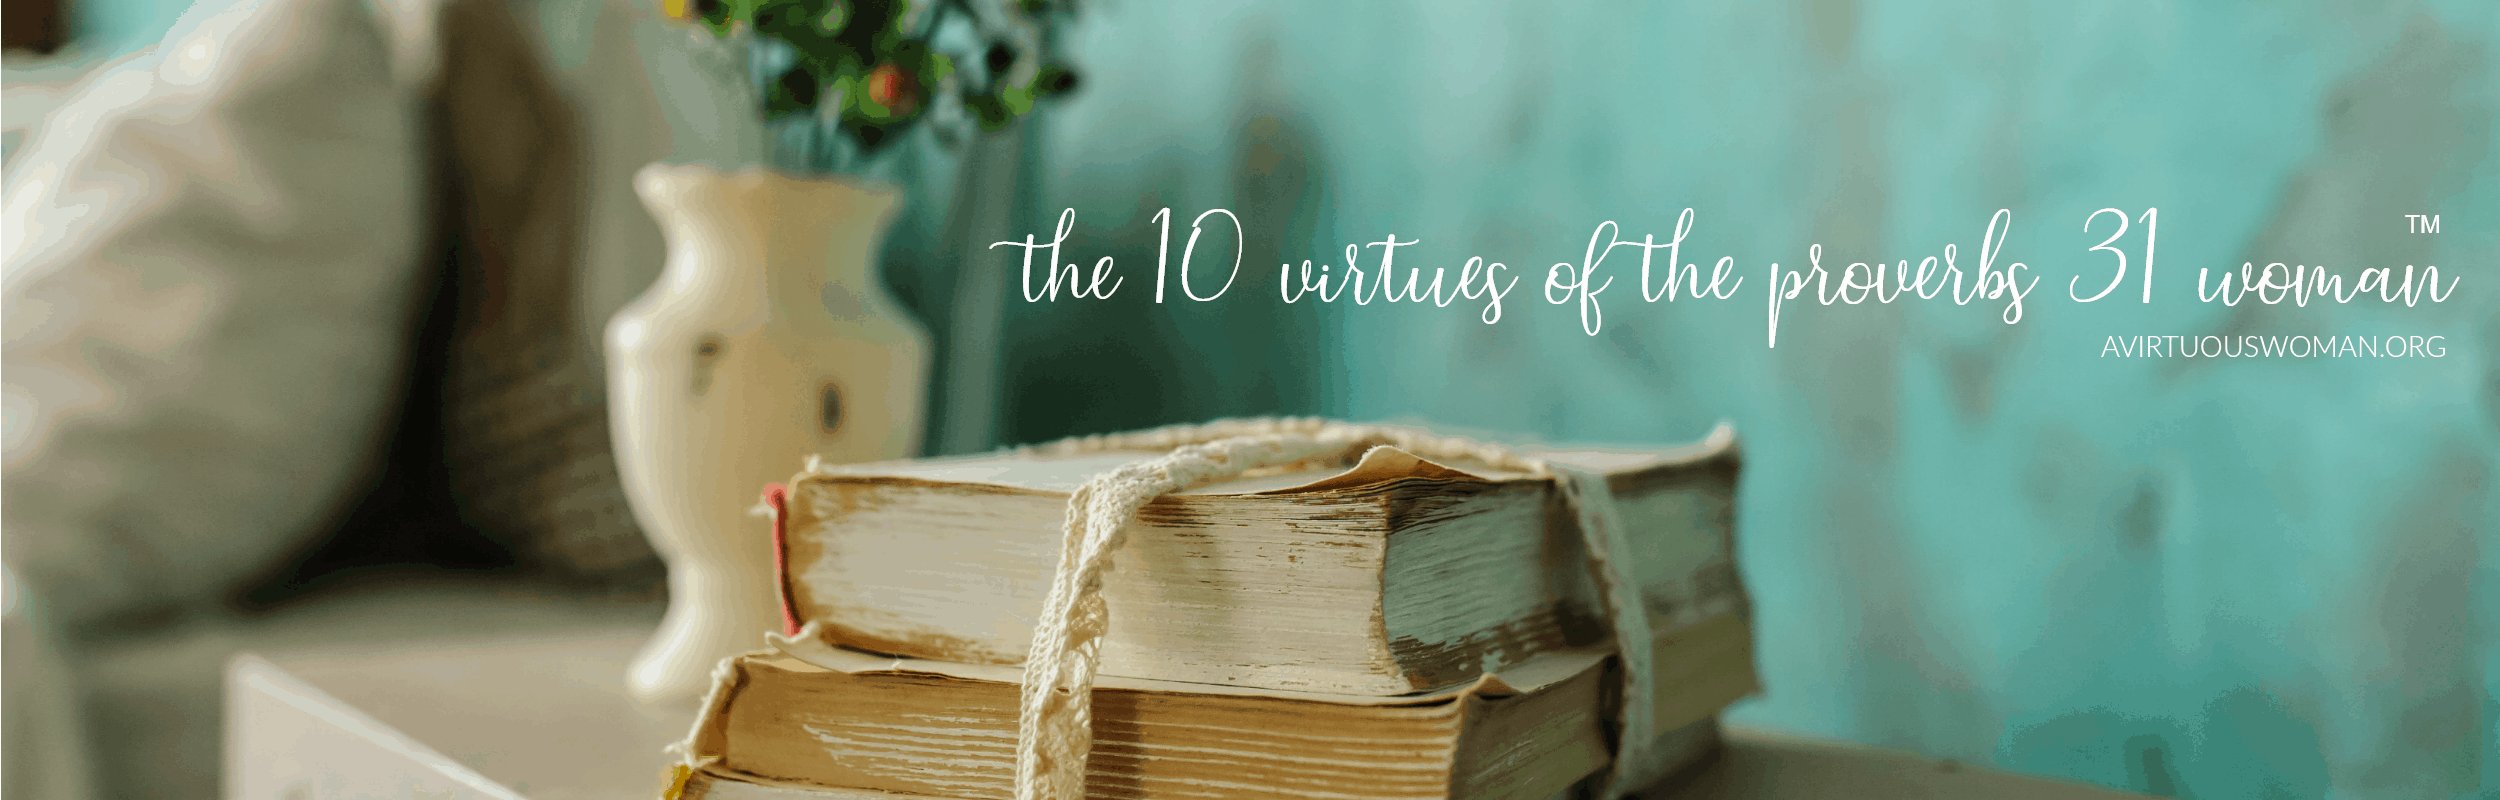 the 10 virtues of the proverbs 31 woman